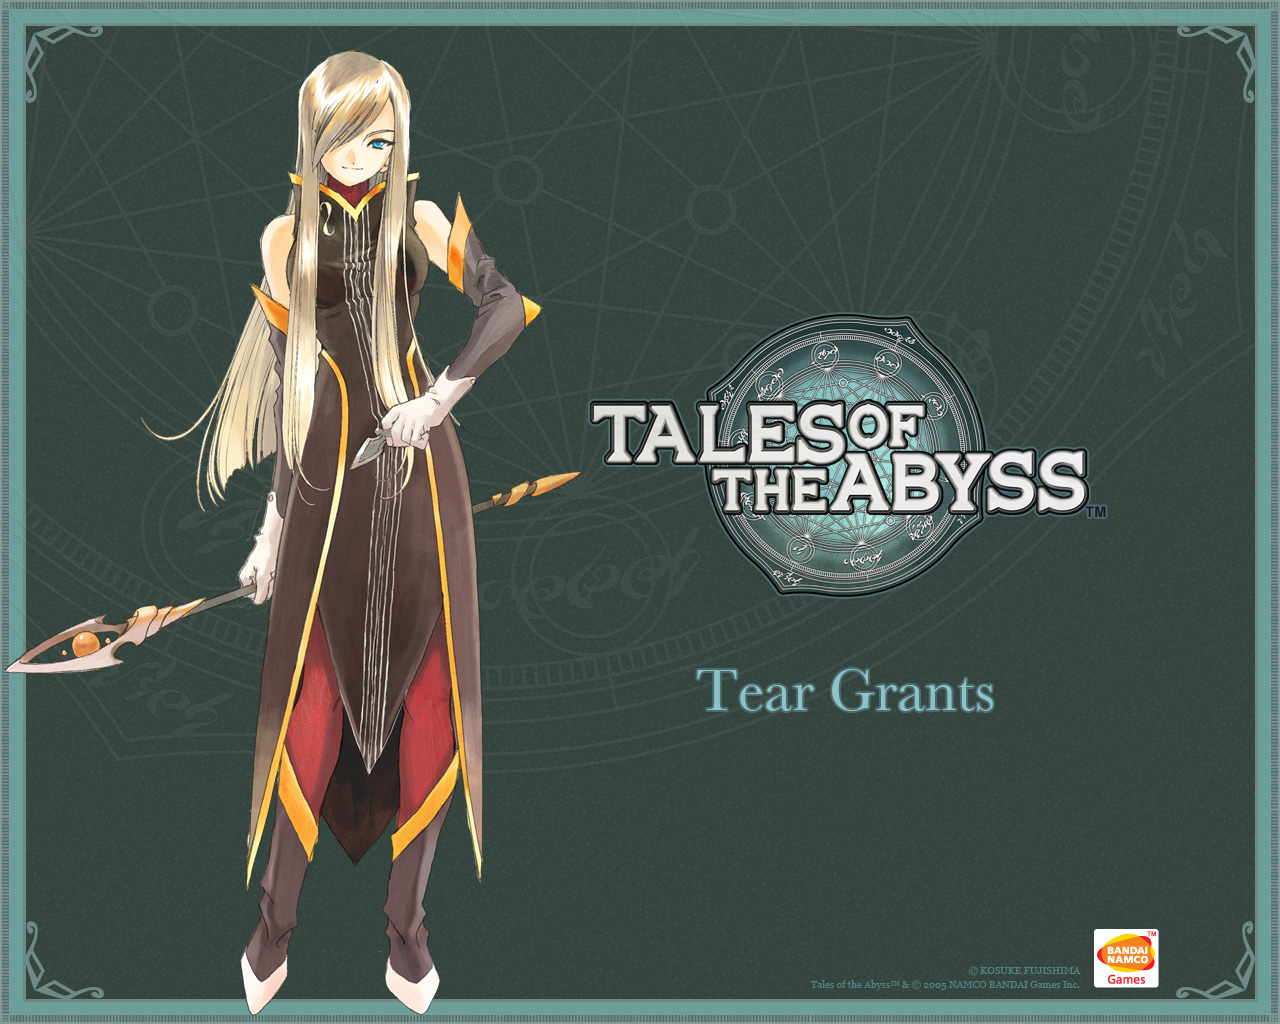 Tales of the Abyss wallpaper02 1280x1024jpg 1280x1024